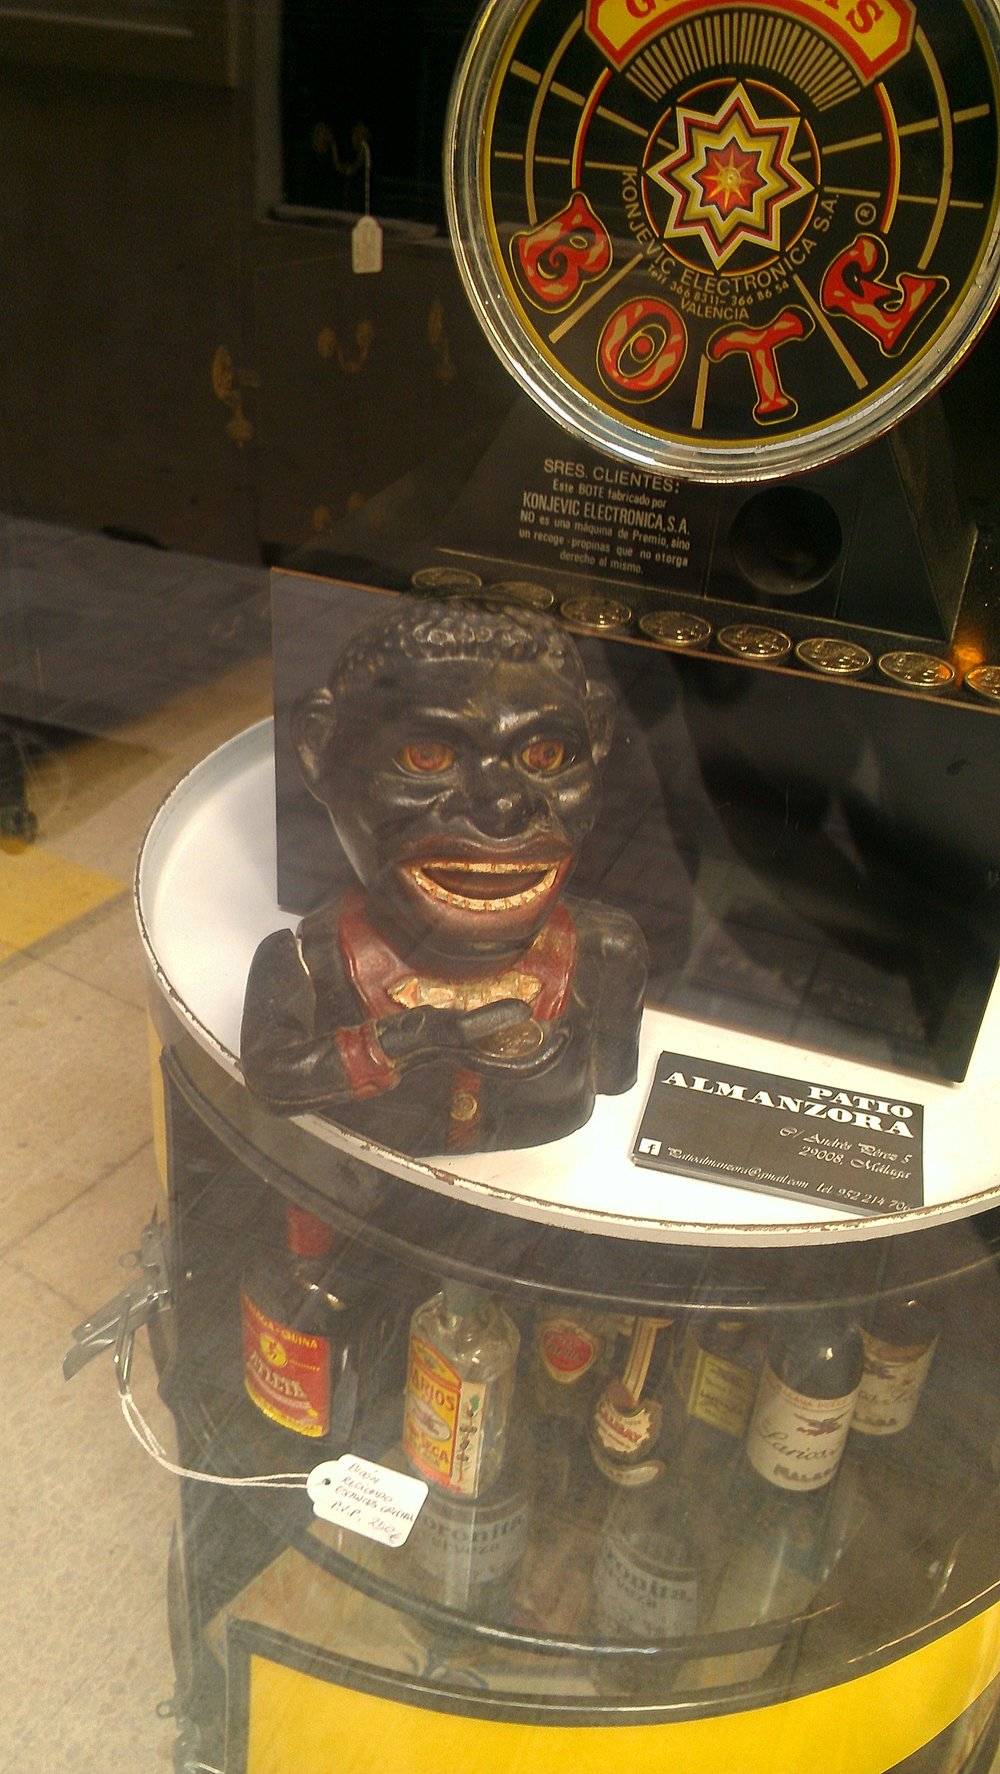 'black sambo' figurine on display in a vintage curiosity shop - Malaga